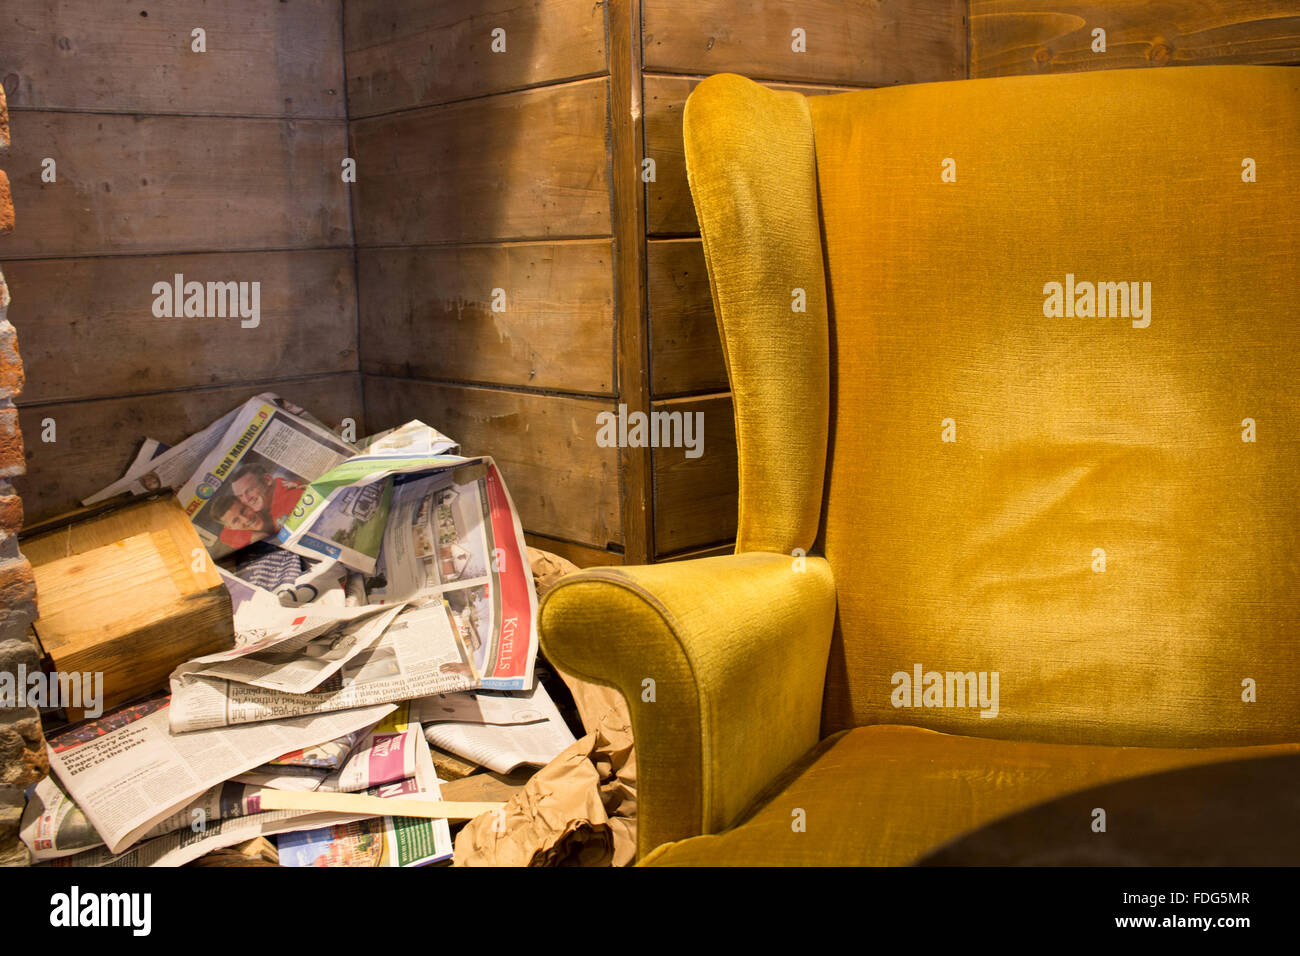 A comfy armchair and a pile of newspapers. - Stock Image